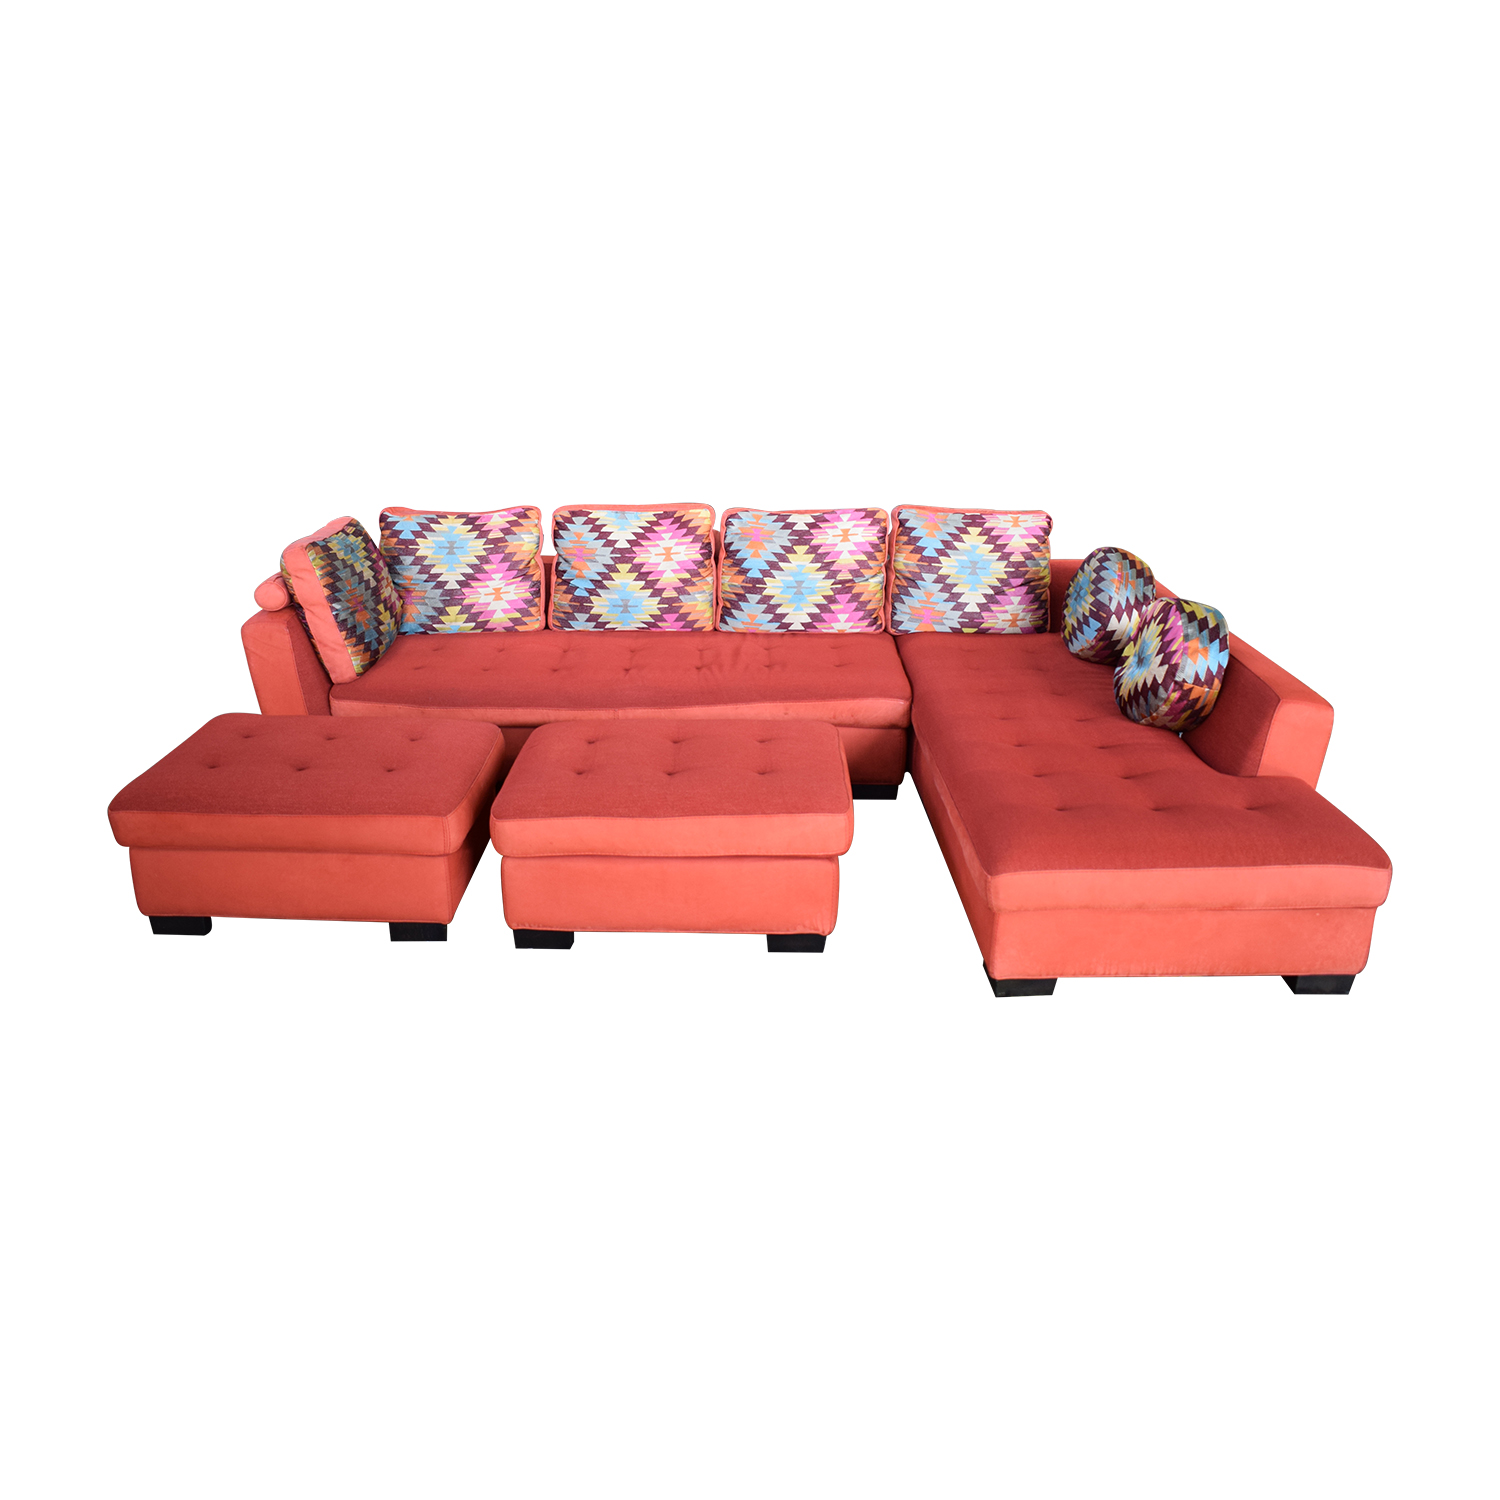 Maurice Villency Maurice Villency Sofa Sectional with Ottomans second hand